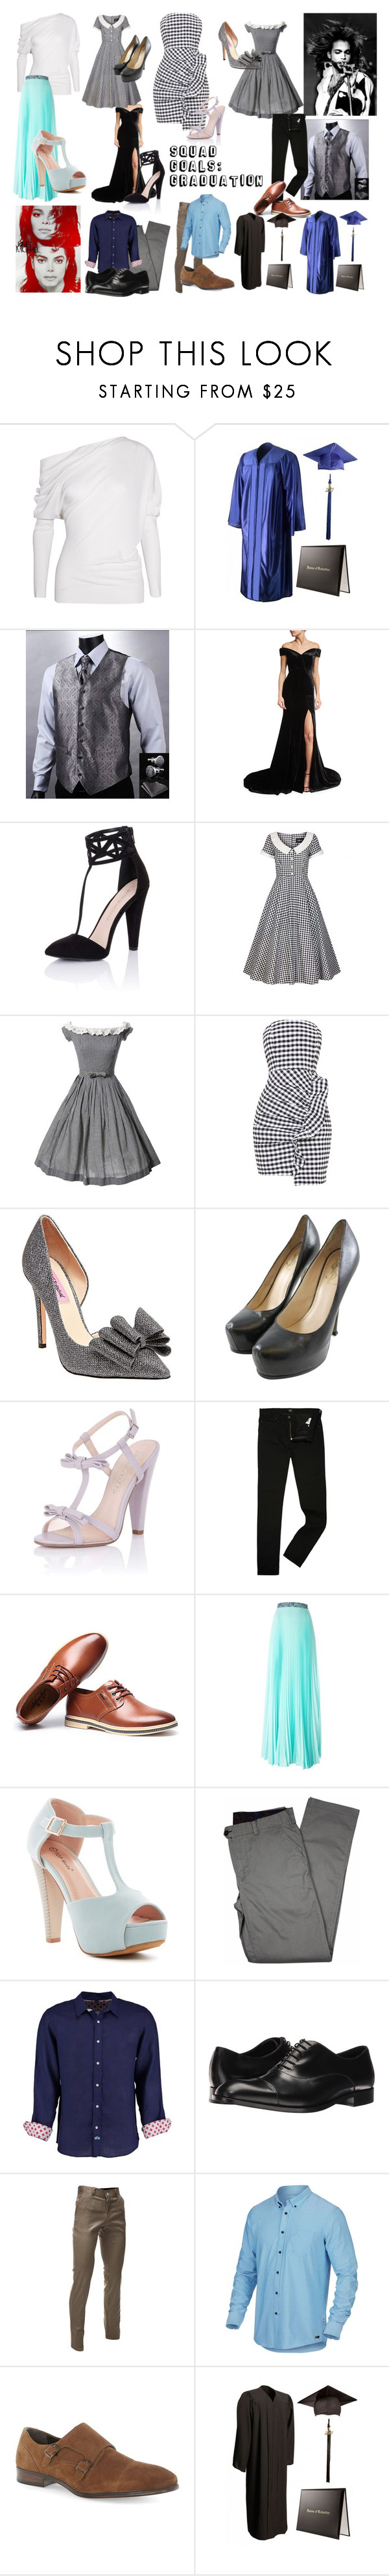 """""""Squad Goals: Graduation"""" by ruby-lioness ❤ liked on Polyvore featuring Tom Ford, Rachel Gilbert, Little Mistress, Collectif, Betsey Johnson, Yves Saint Laurent, Paper Dolls, Lee, Christopher Kane and Top Moda"""